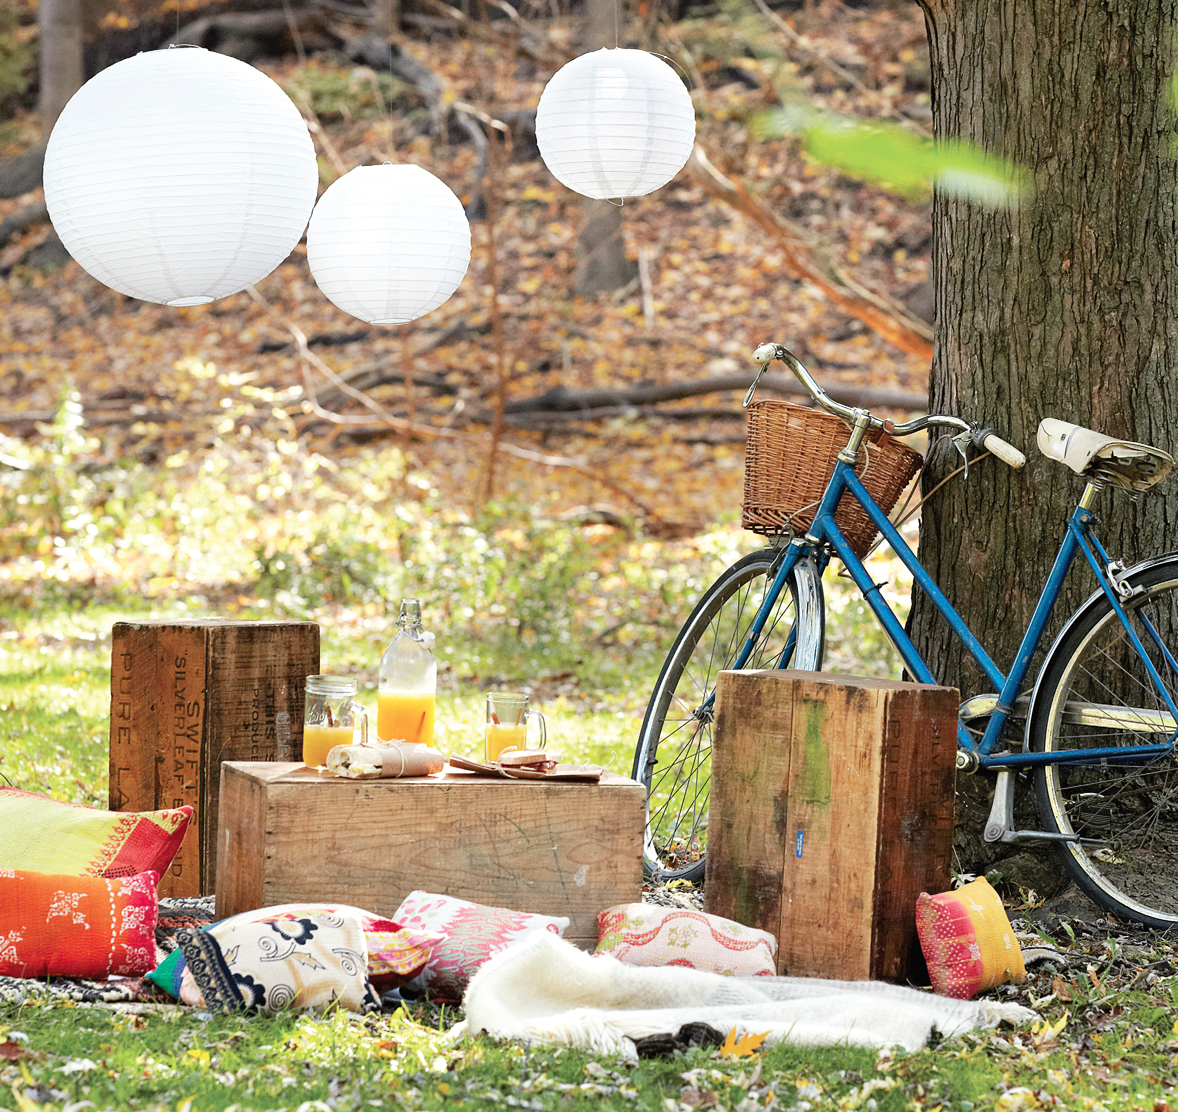 Picnic Decor Host A Picnic In Your Own Backyard Decor Tips And Recipes